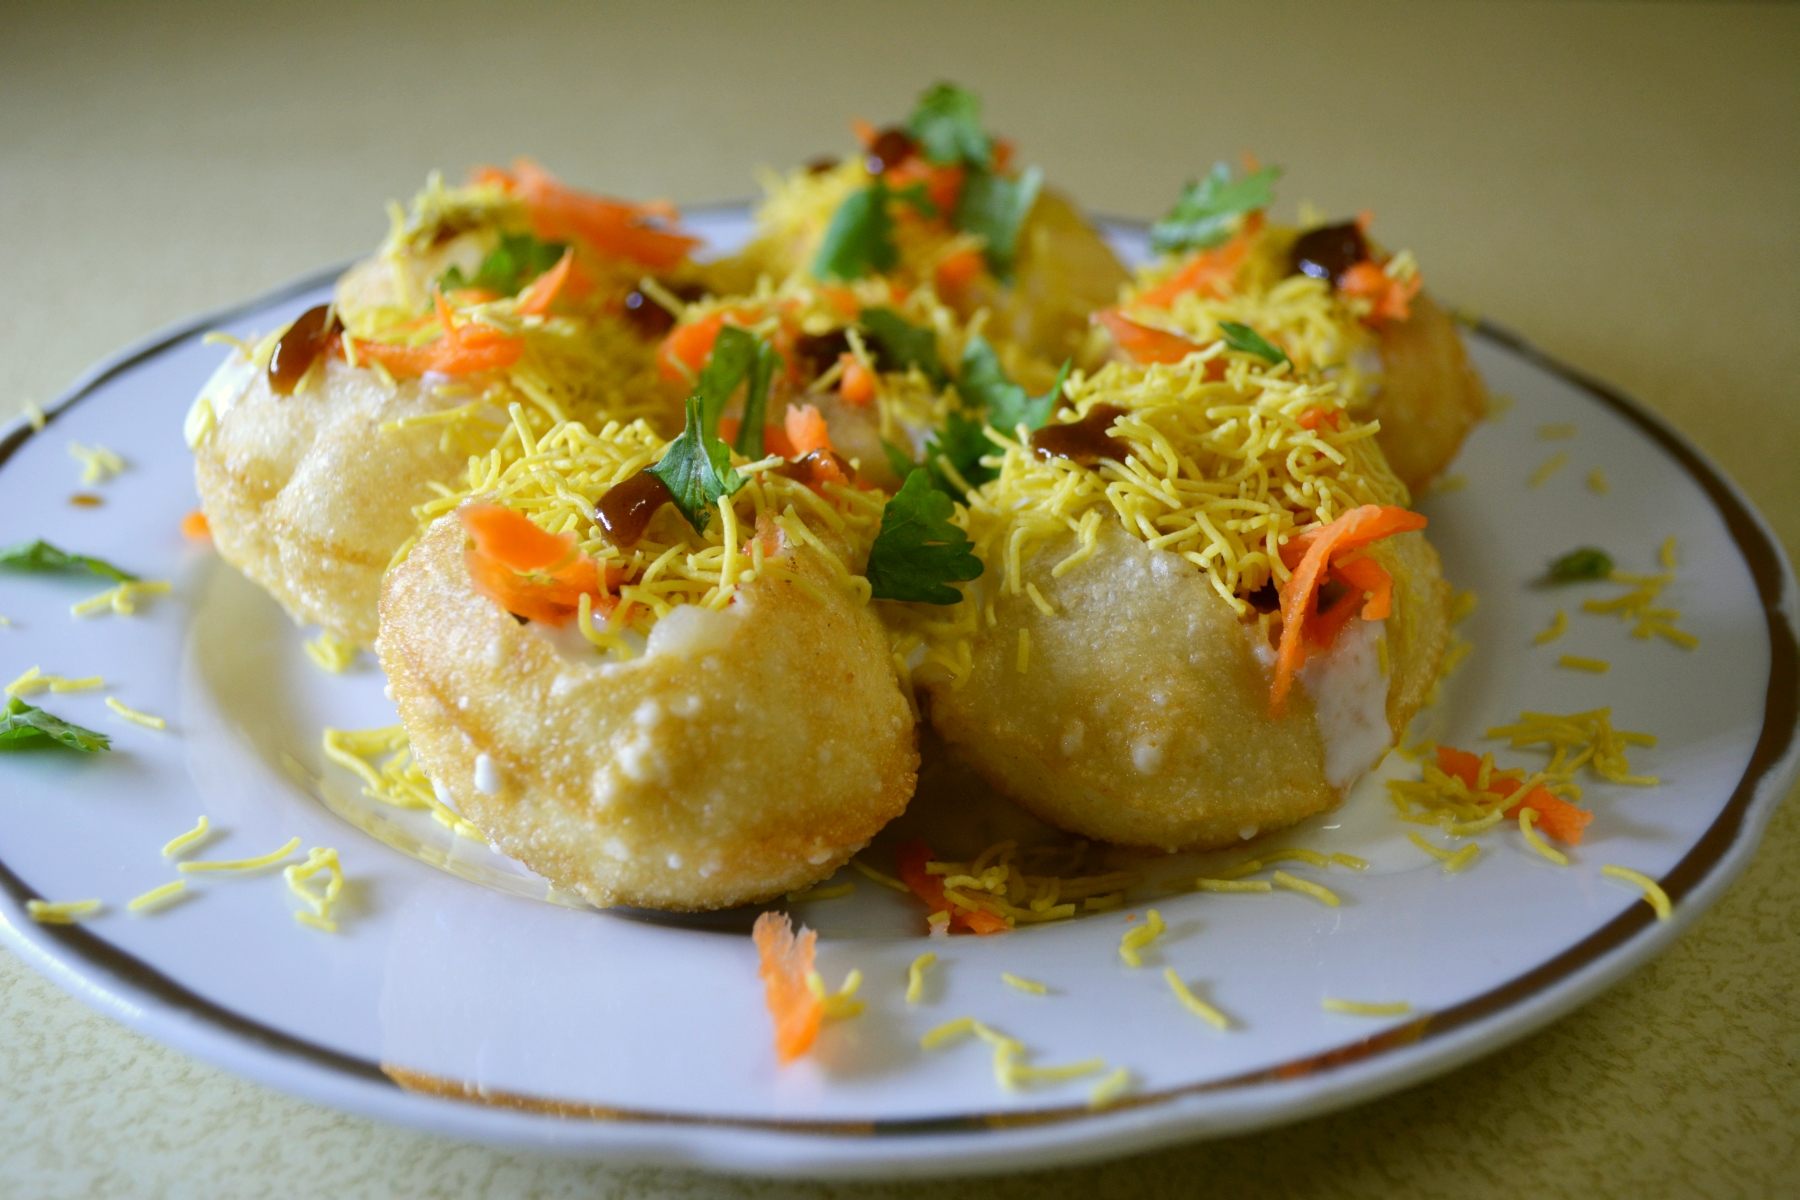 Kashi Chaat Bhandar - The Top Street Foods Joints in Varanasi (Banaras or Kashi)